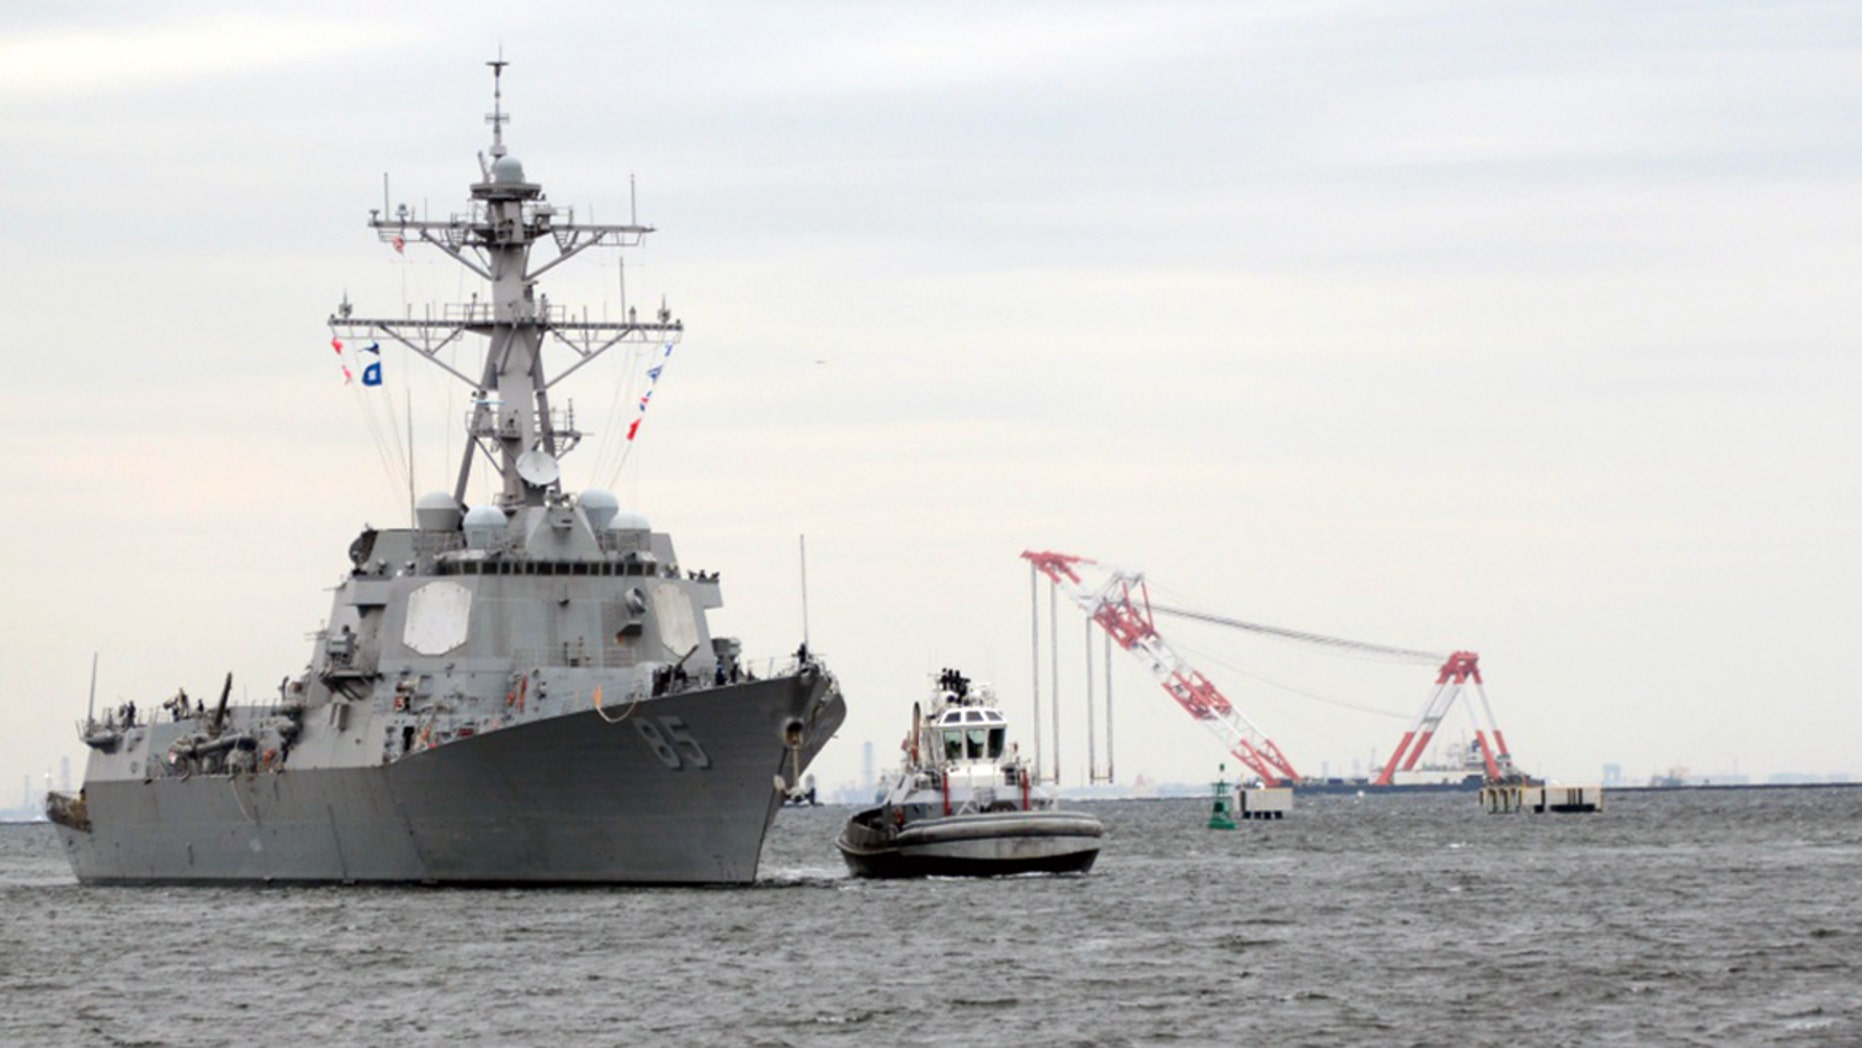 The guided-missile destroyer USS Mc Campbell in a 2015